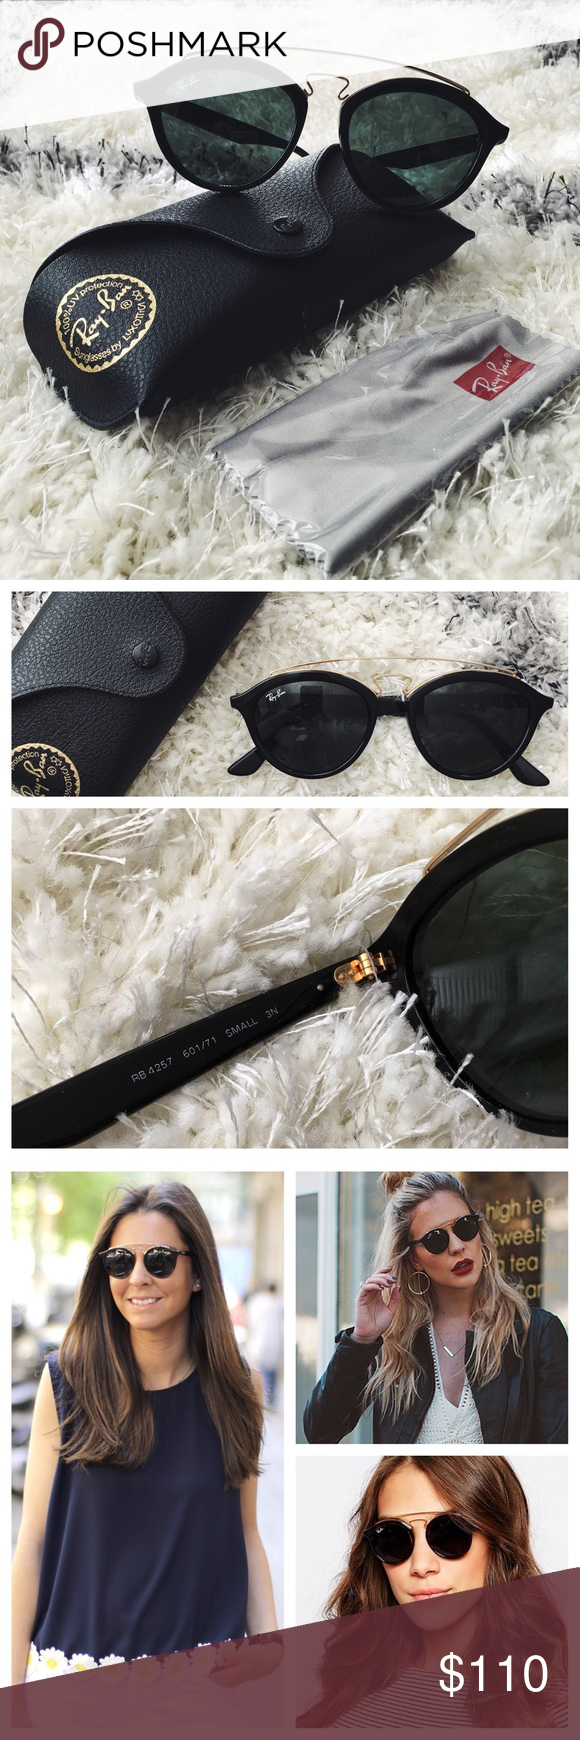 dc4b658a71 Ray-Ban Gatsby II Like new Ray-Ban Gatsby II in black. In PERFECT  condition. Reposhing these because I don t think round lenses look good on  me 😥 Ray-Ban ...